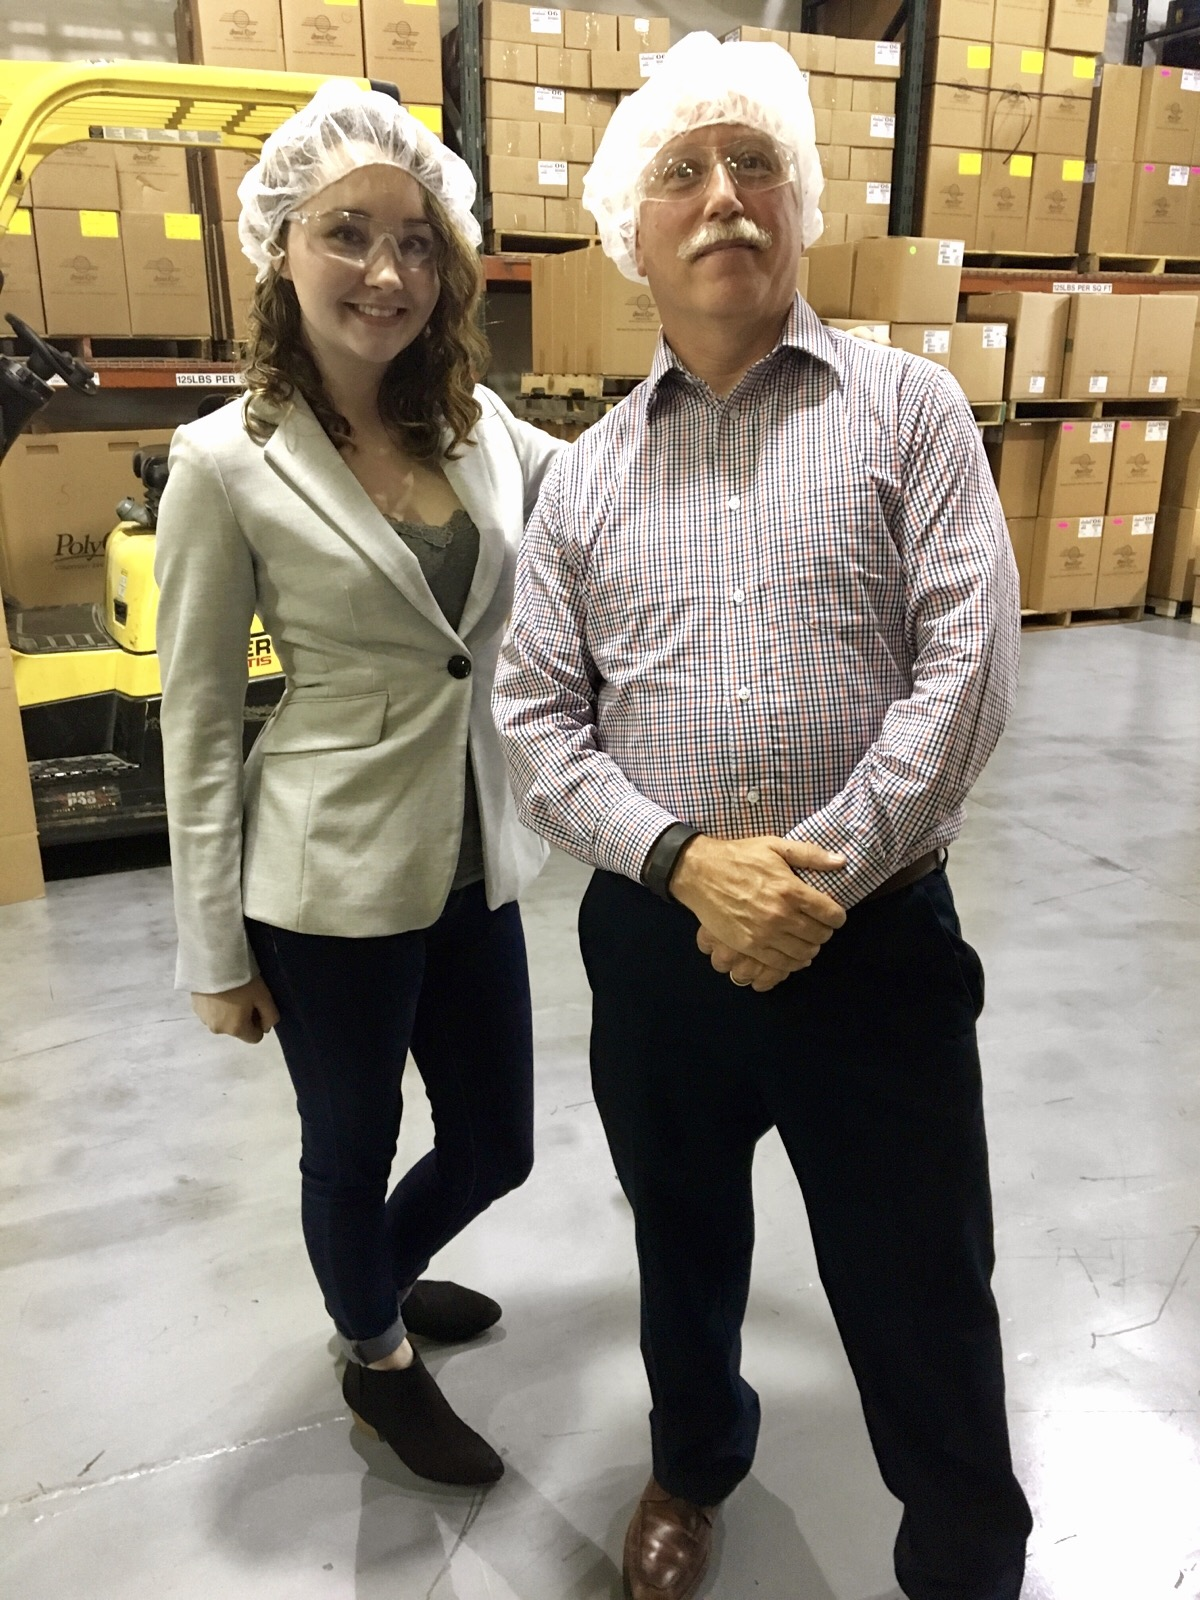 My boss and me prior to going into our client's 'clean room'